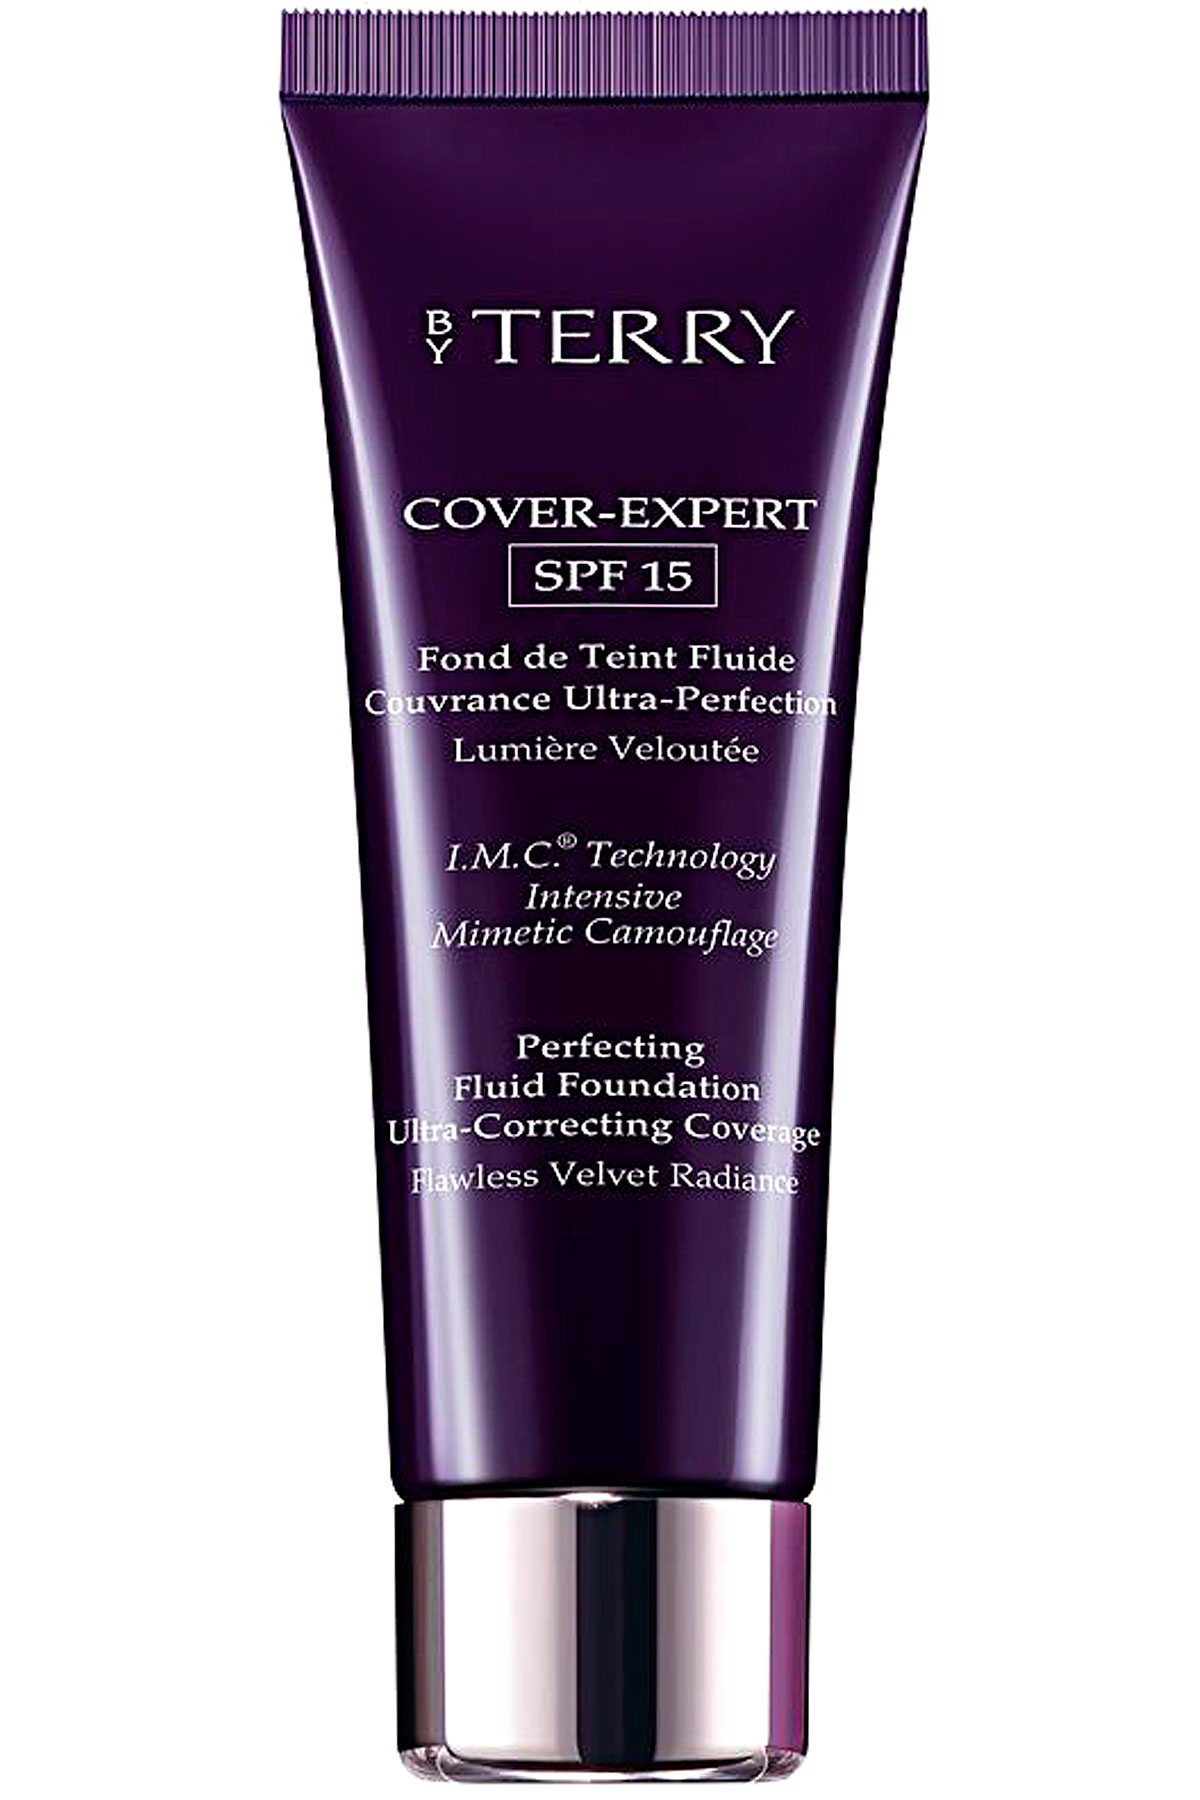 By Terry Makeup for Women, Cover-expert Spf15 - N.4 Rosy Beige - 35 Ml, Rosy Beige, 2019, 35 ml